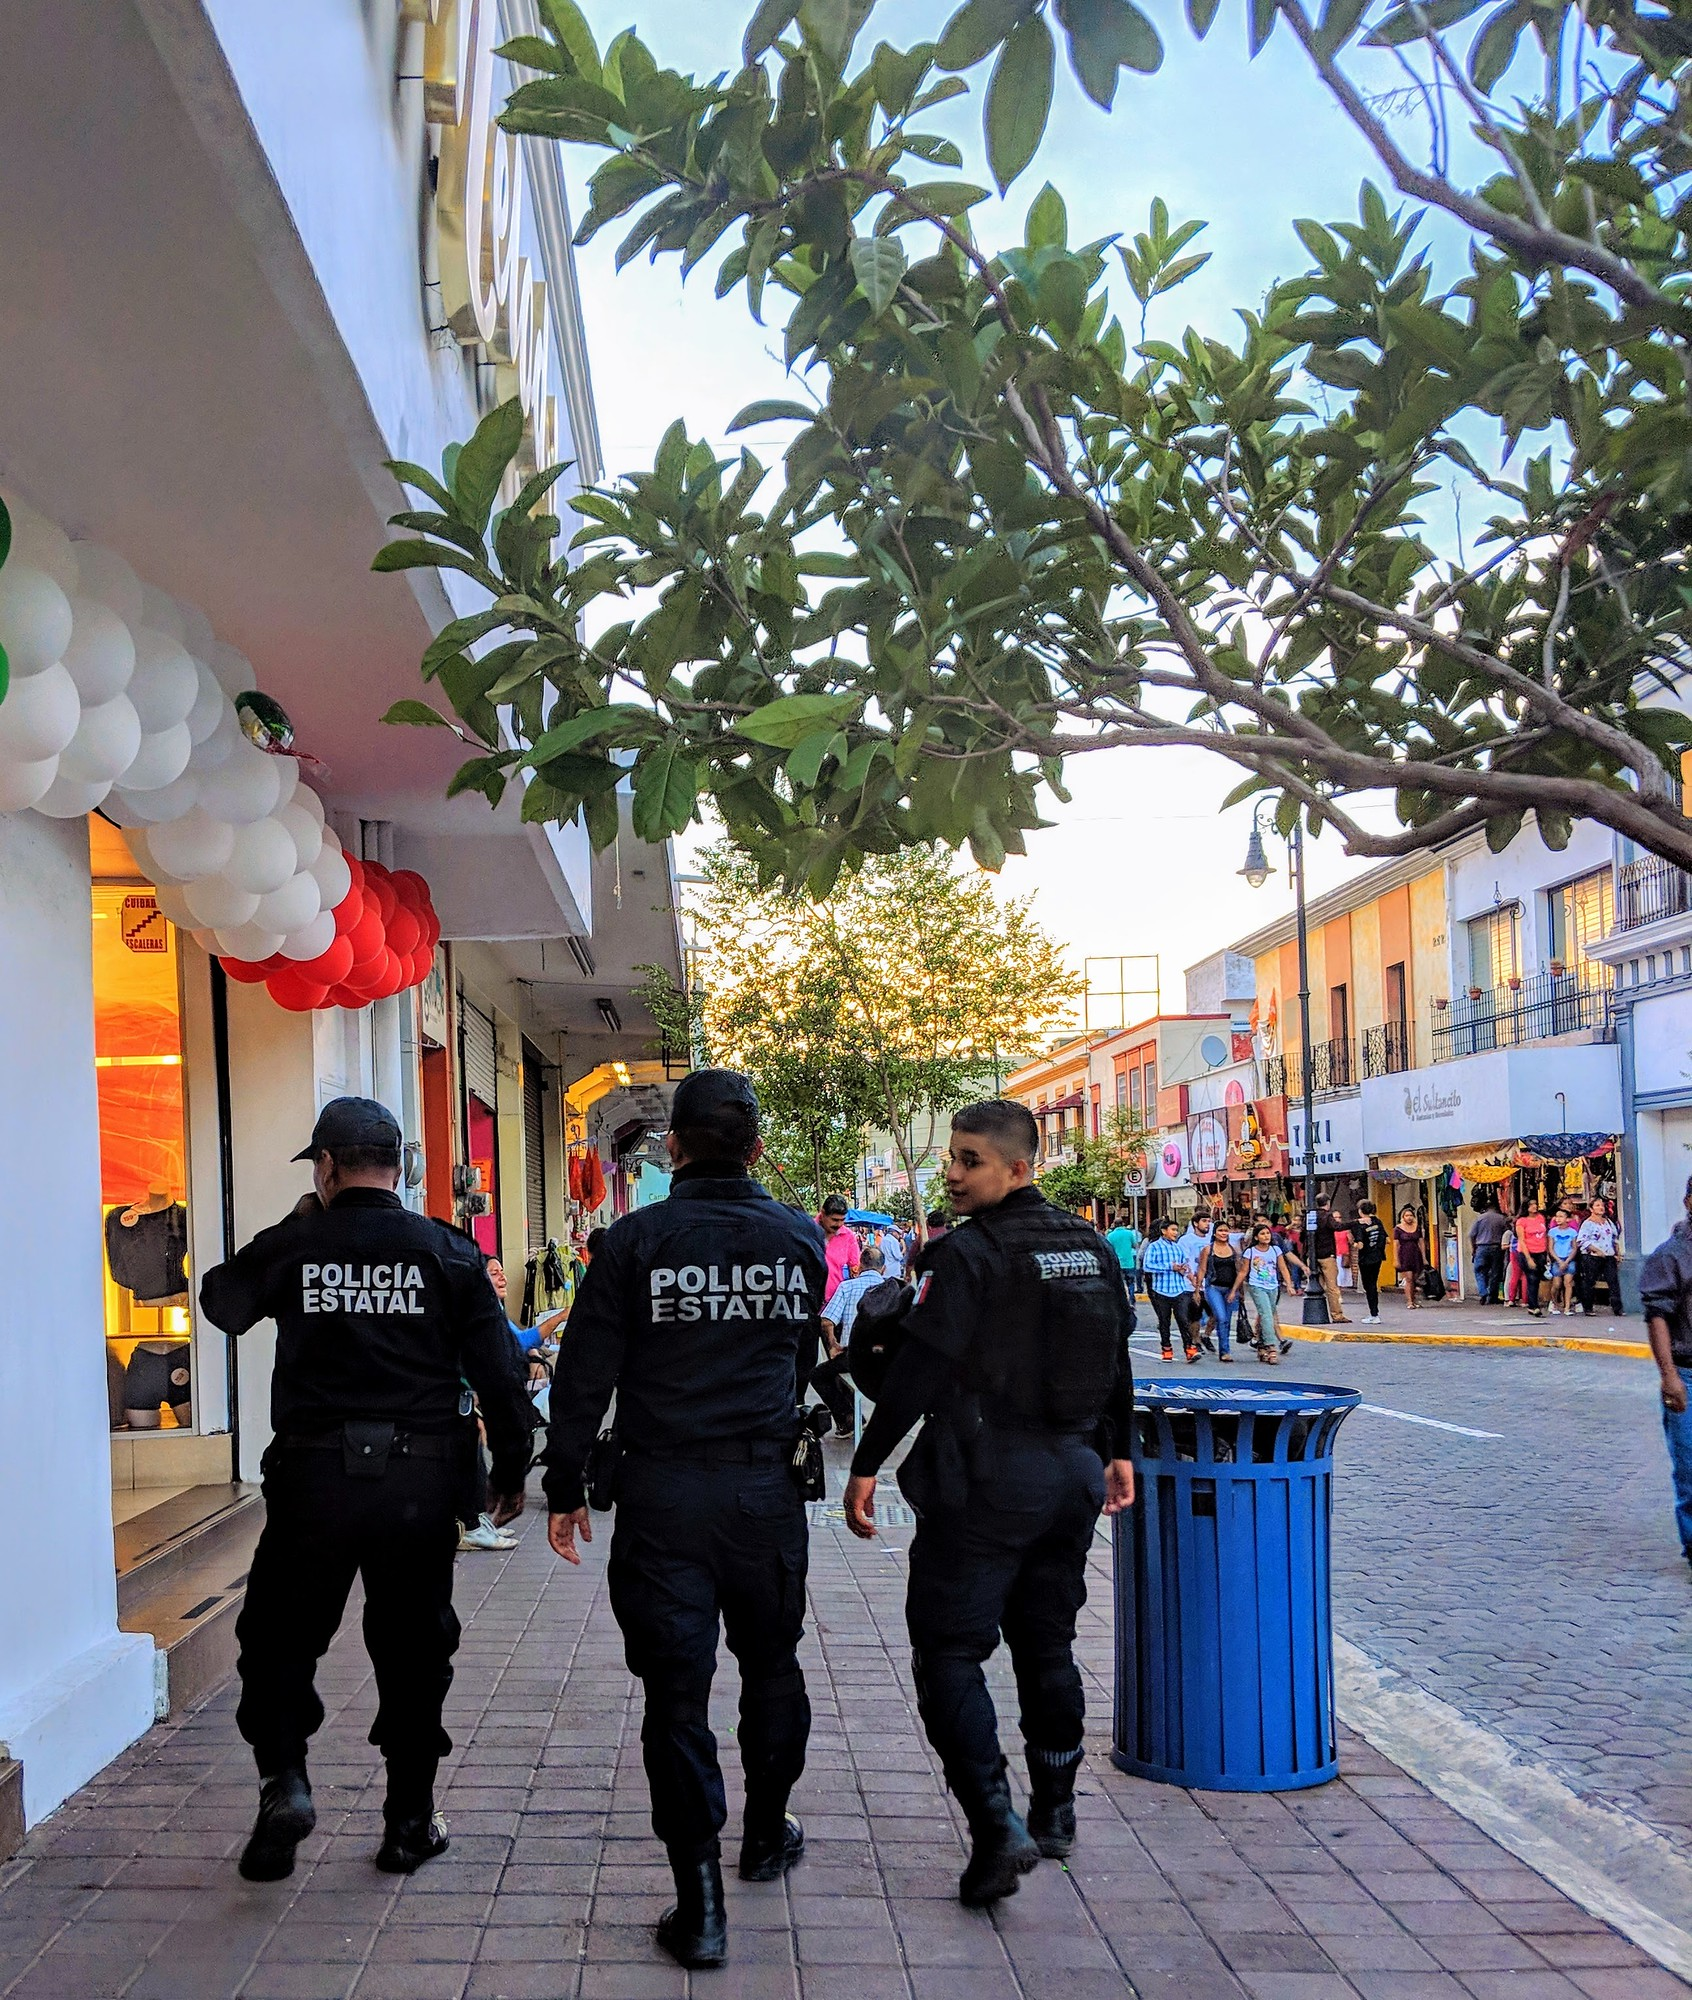 Local police during a festival in Colima in Mexico